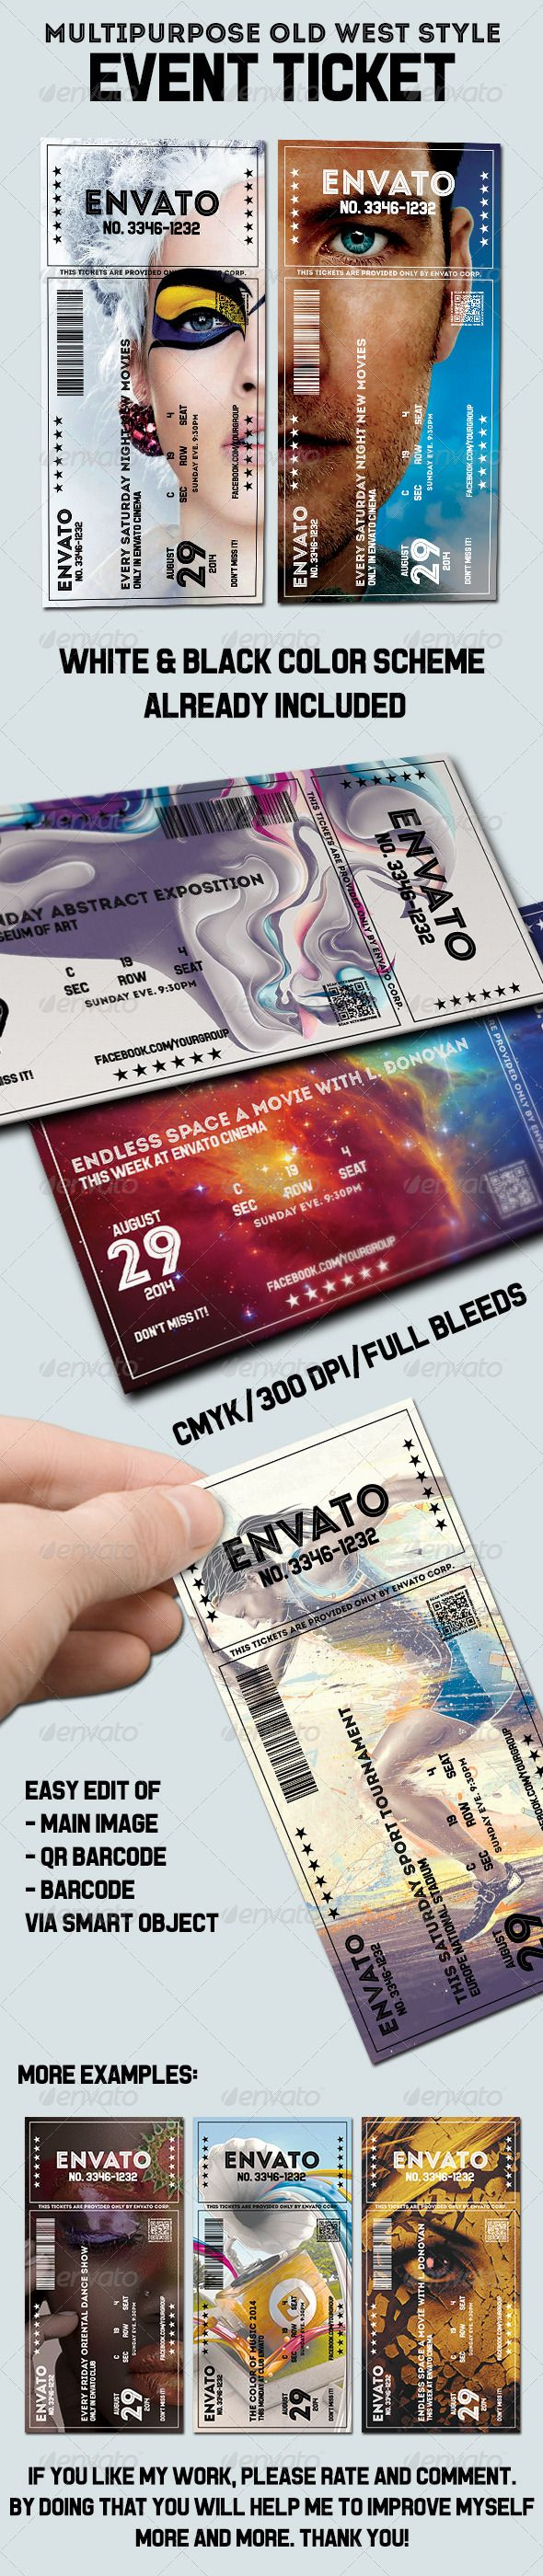 Concert Ticket Template Free Download Beauteous 19 Best Voucher Images On Pinterest  Gift Voucher Design Gift .